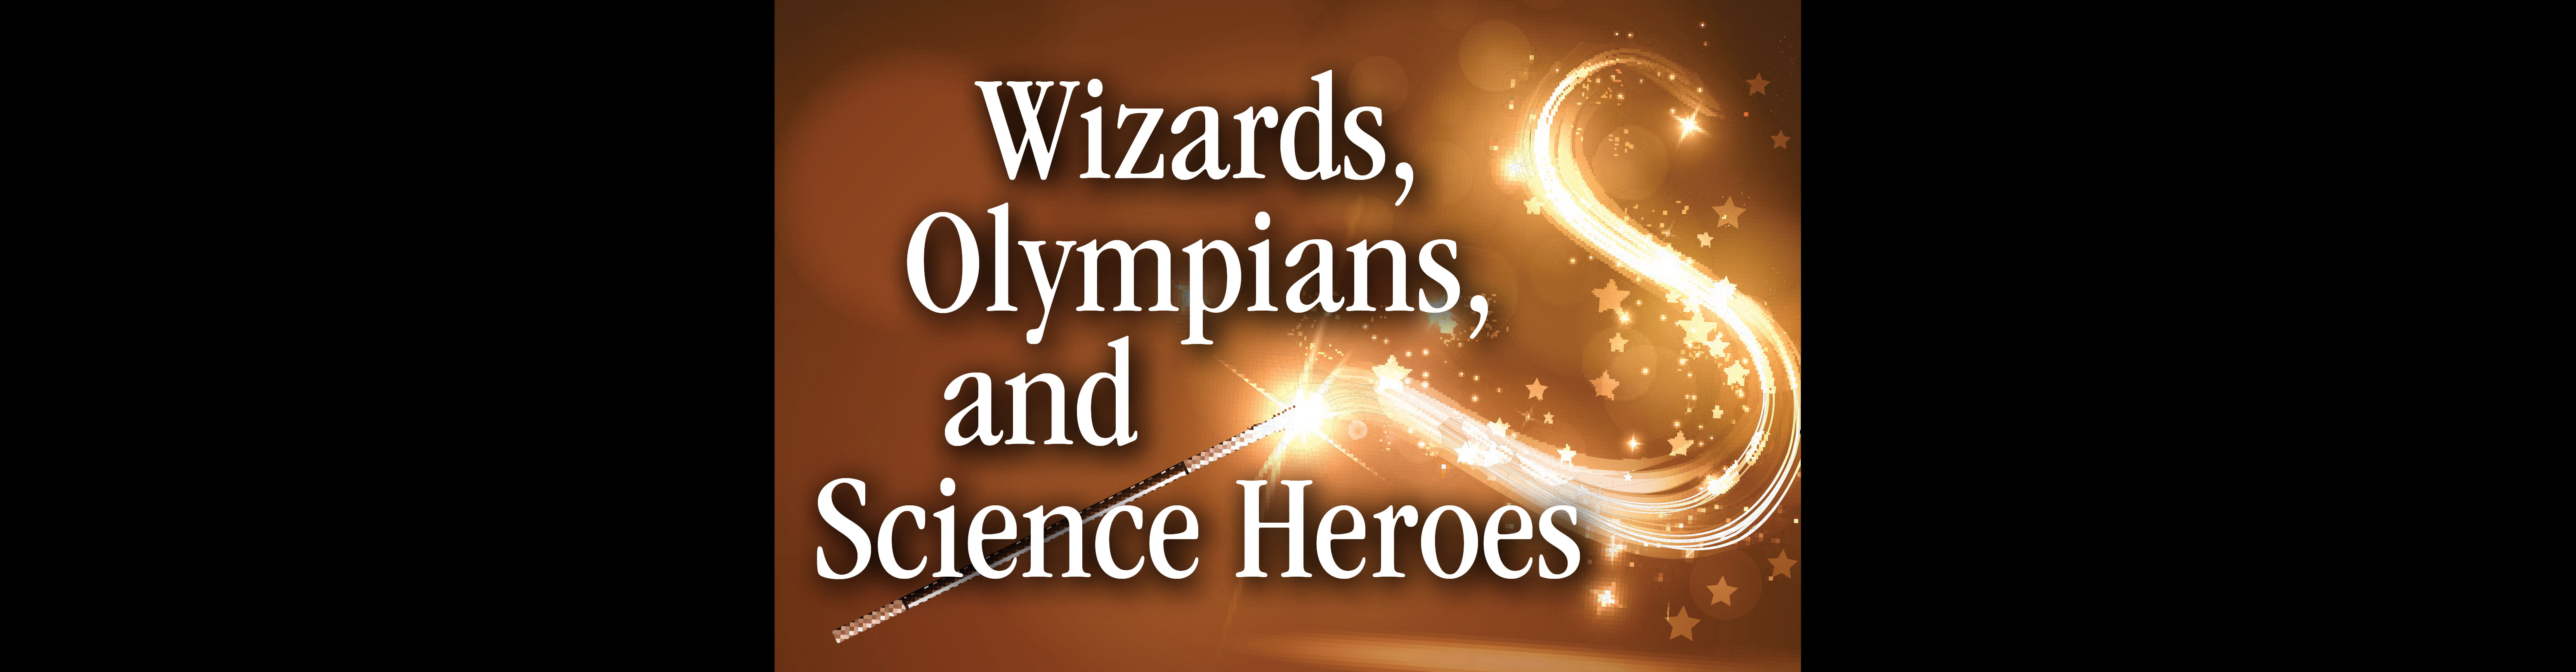 Camp Logo for Wizards Camp- a wand trailing light and stars